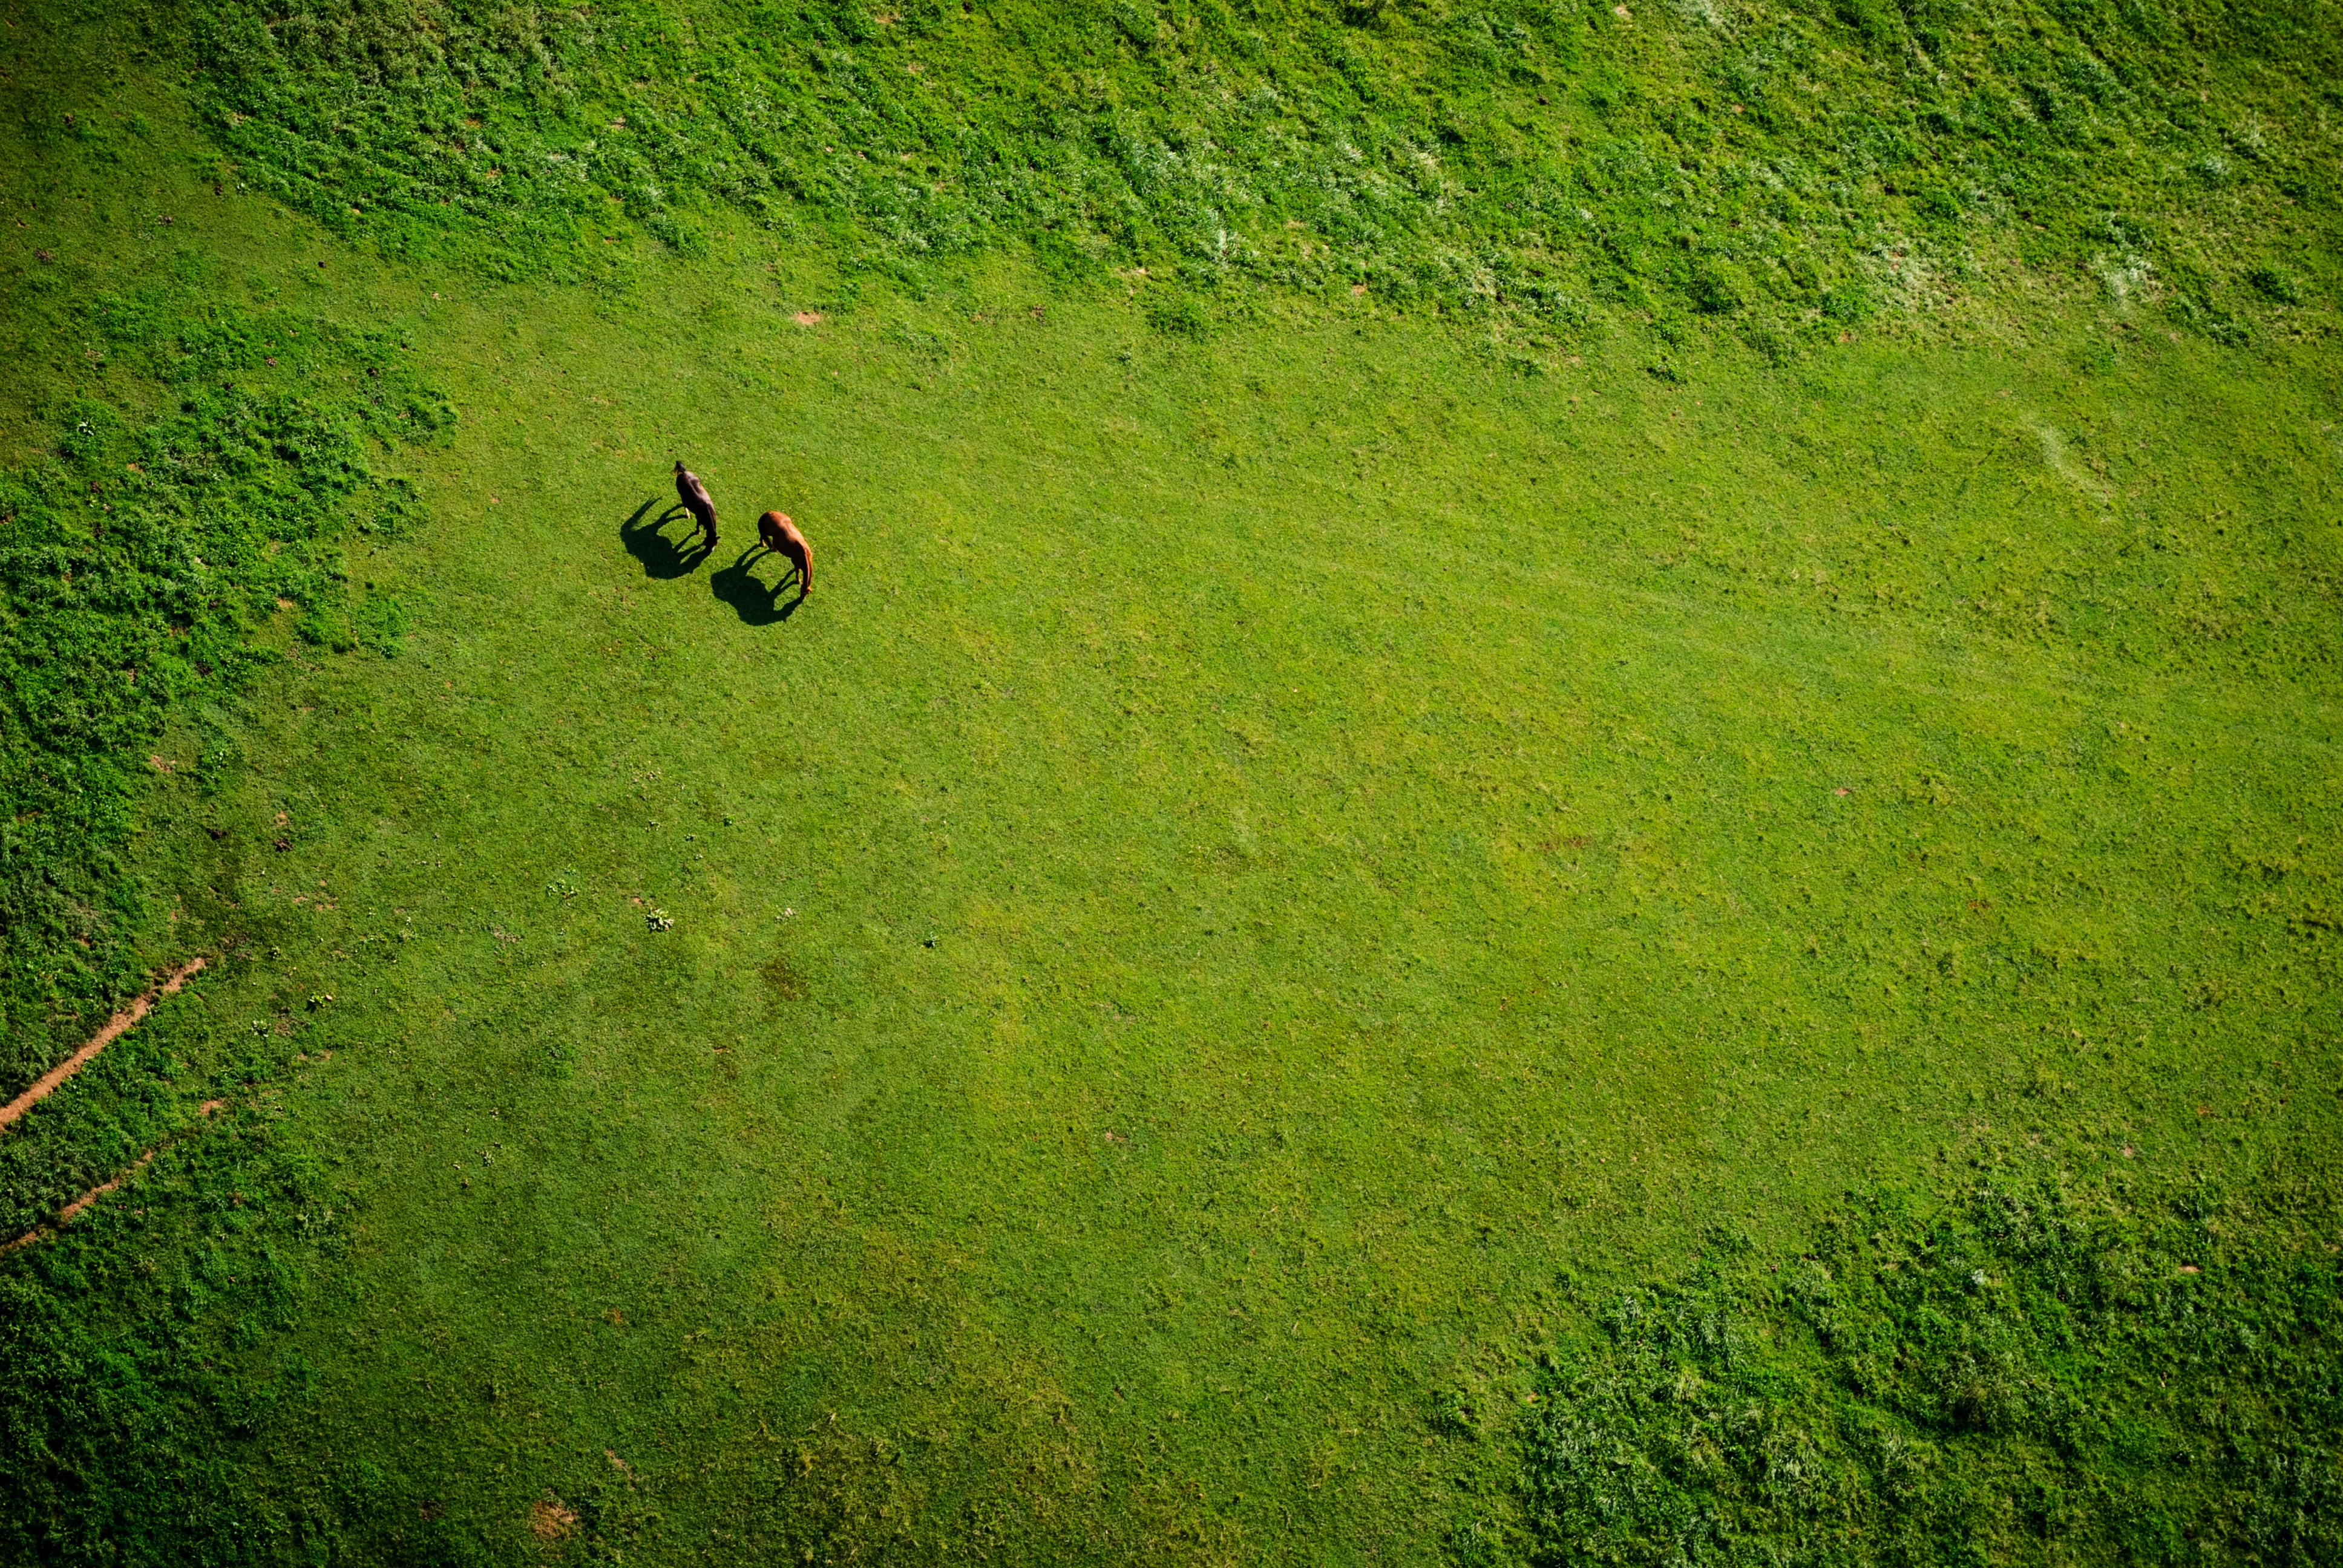 aerial view of grass grass field during daytime